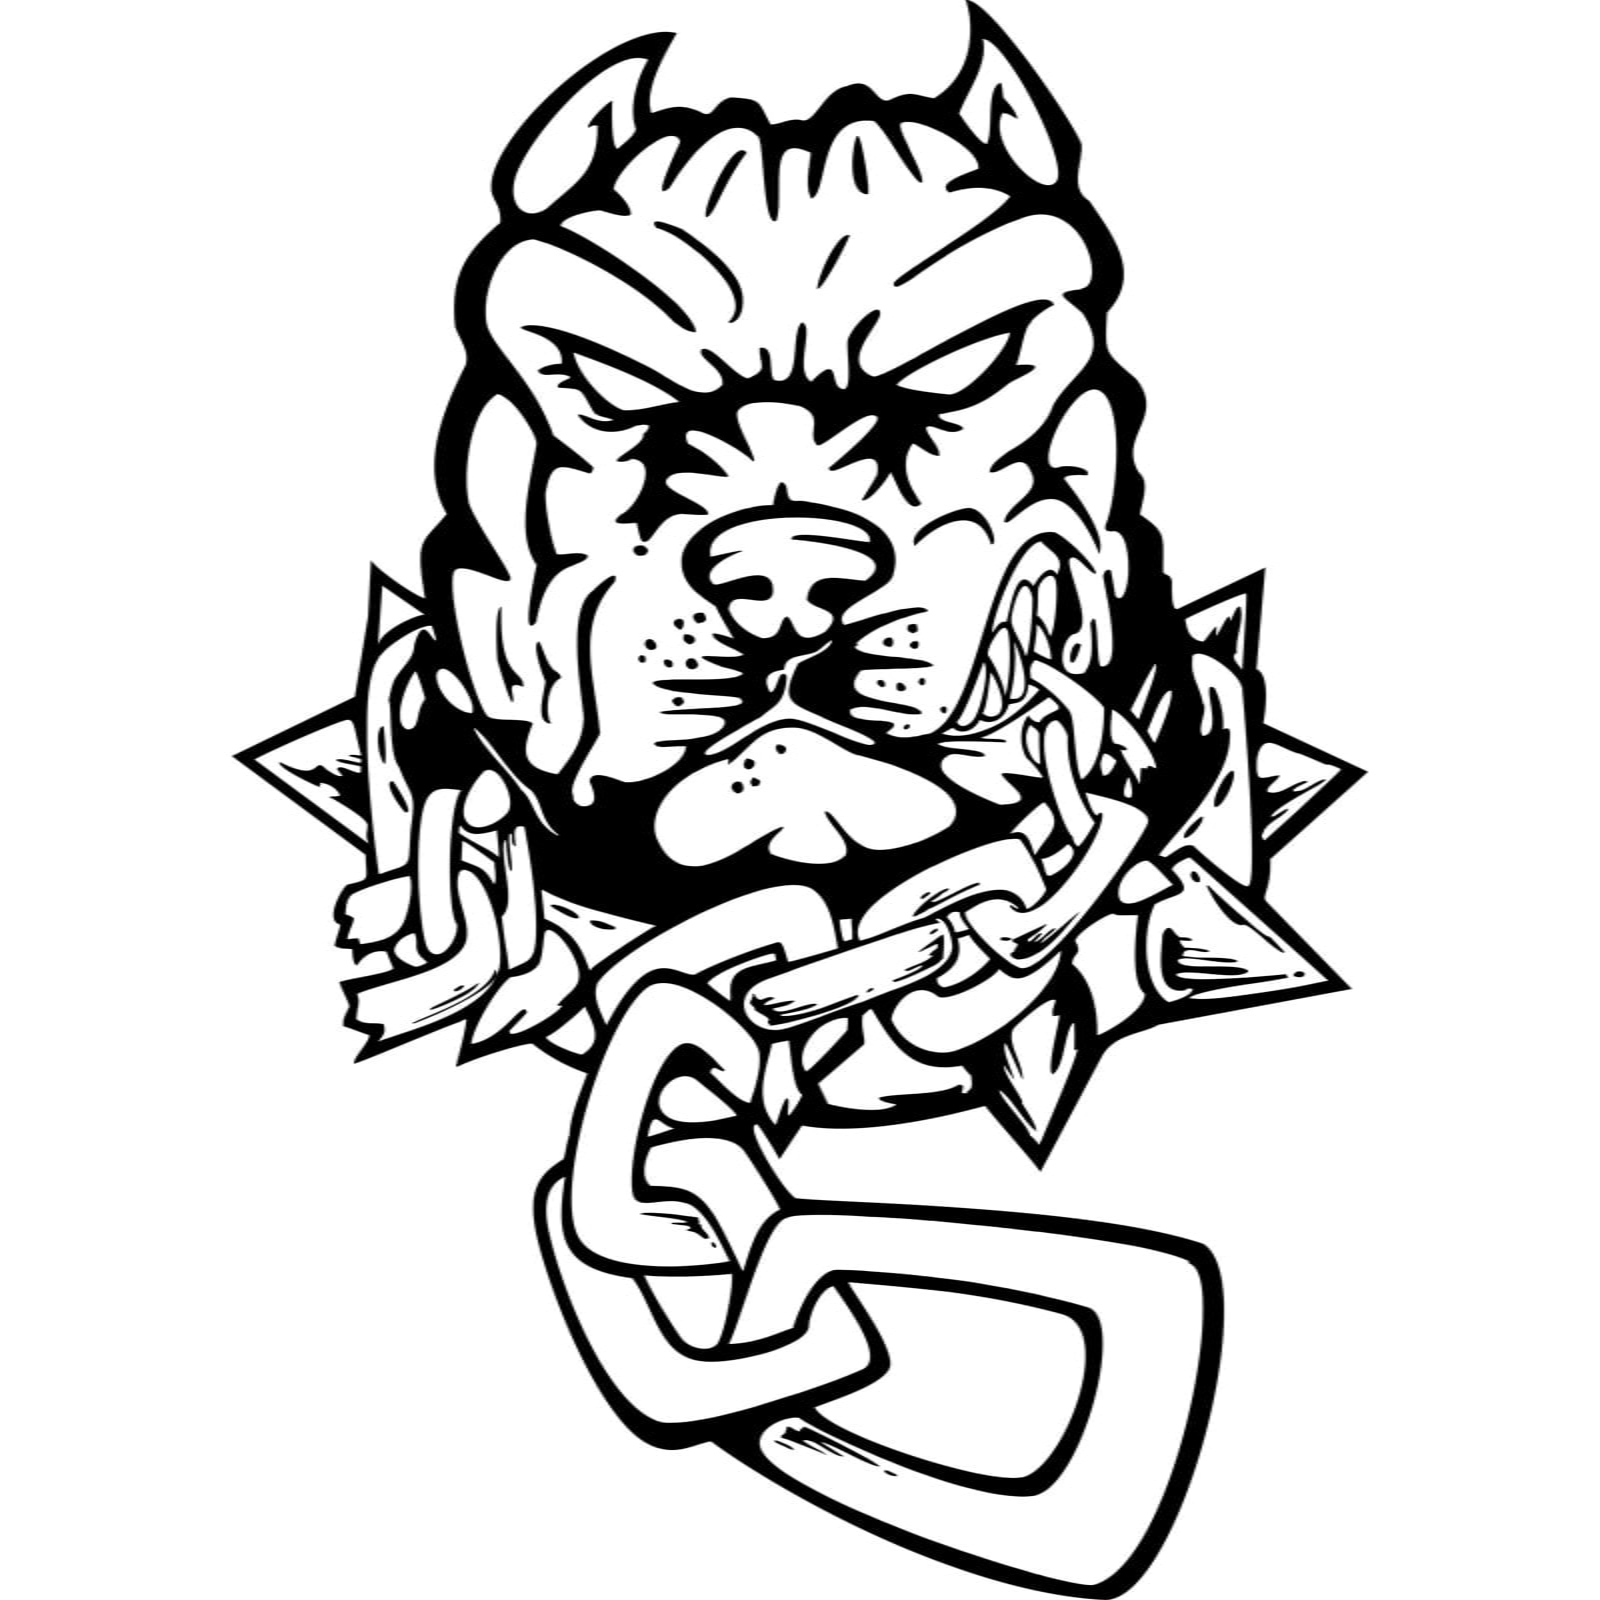 Angry Bulldog Drawing | www.imgkid.com - The Image Kid Has It! Angry Dog Drawing